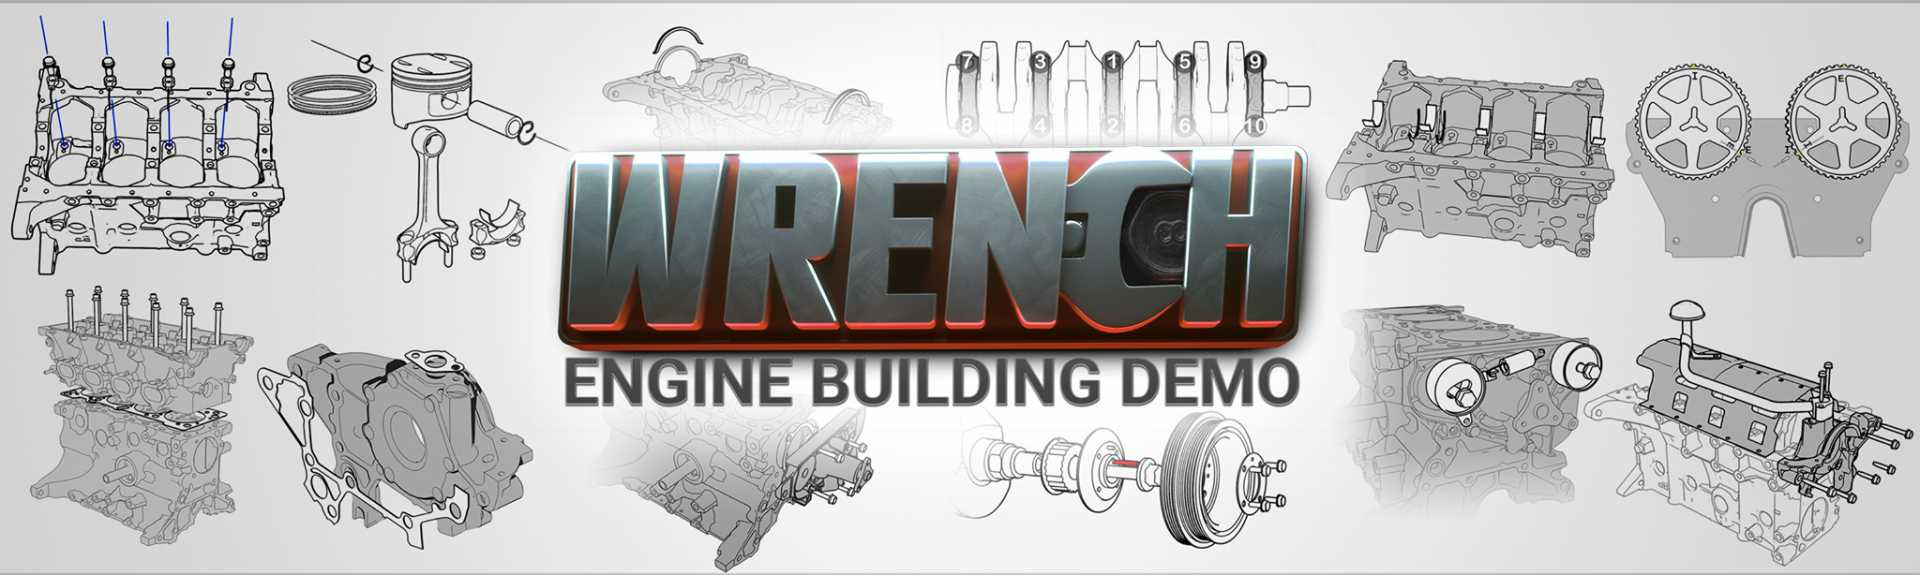 Wrench: Engine Building Demo